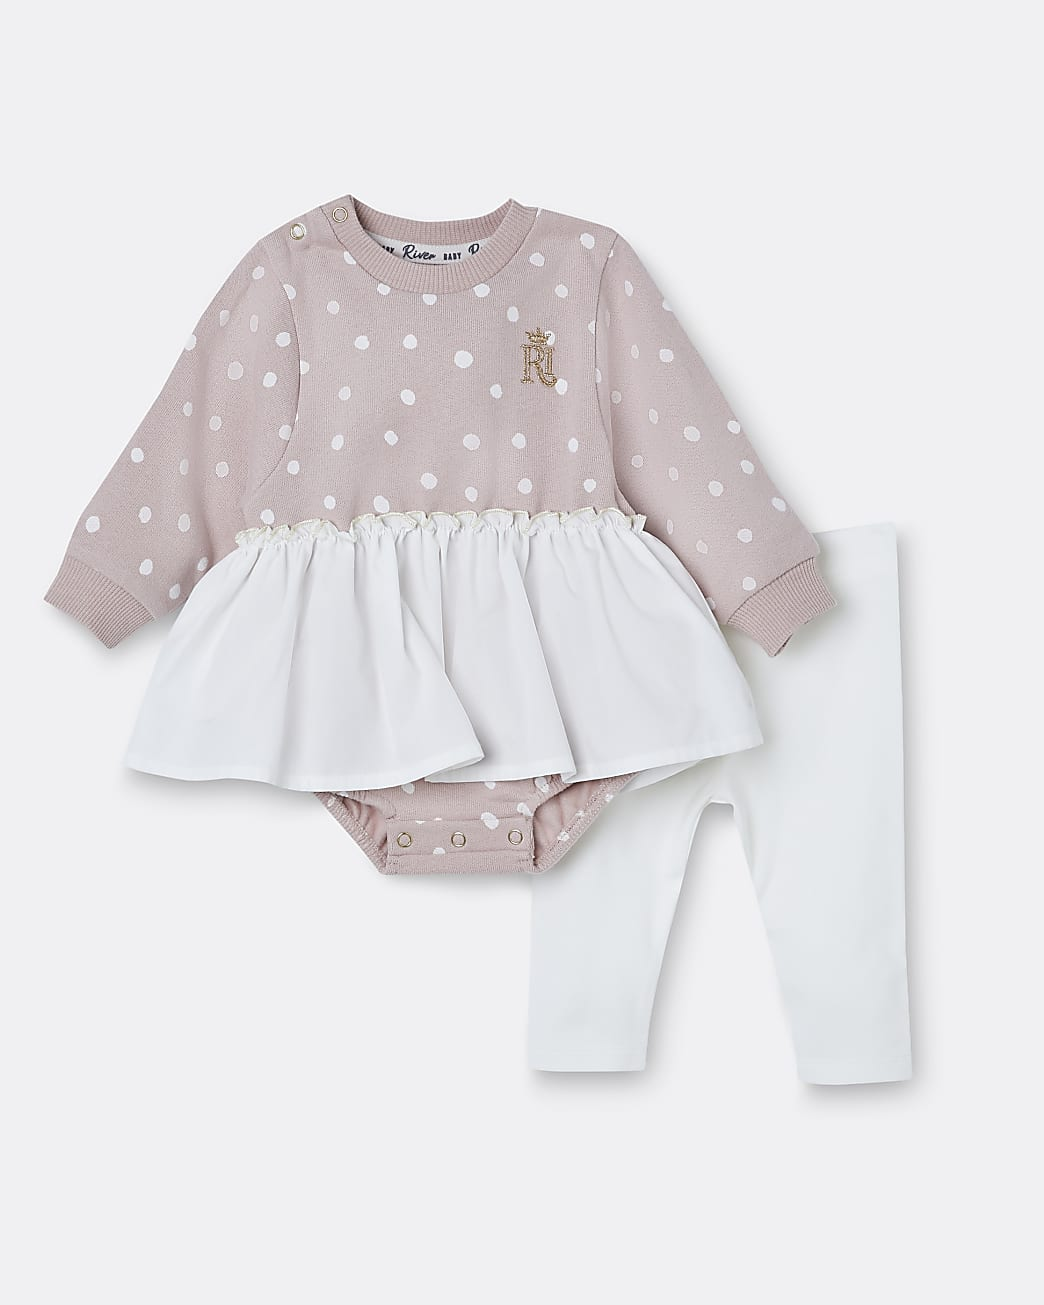 Baby girls pink spot print babygrow outfit